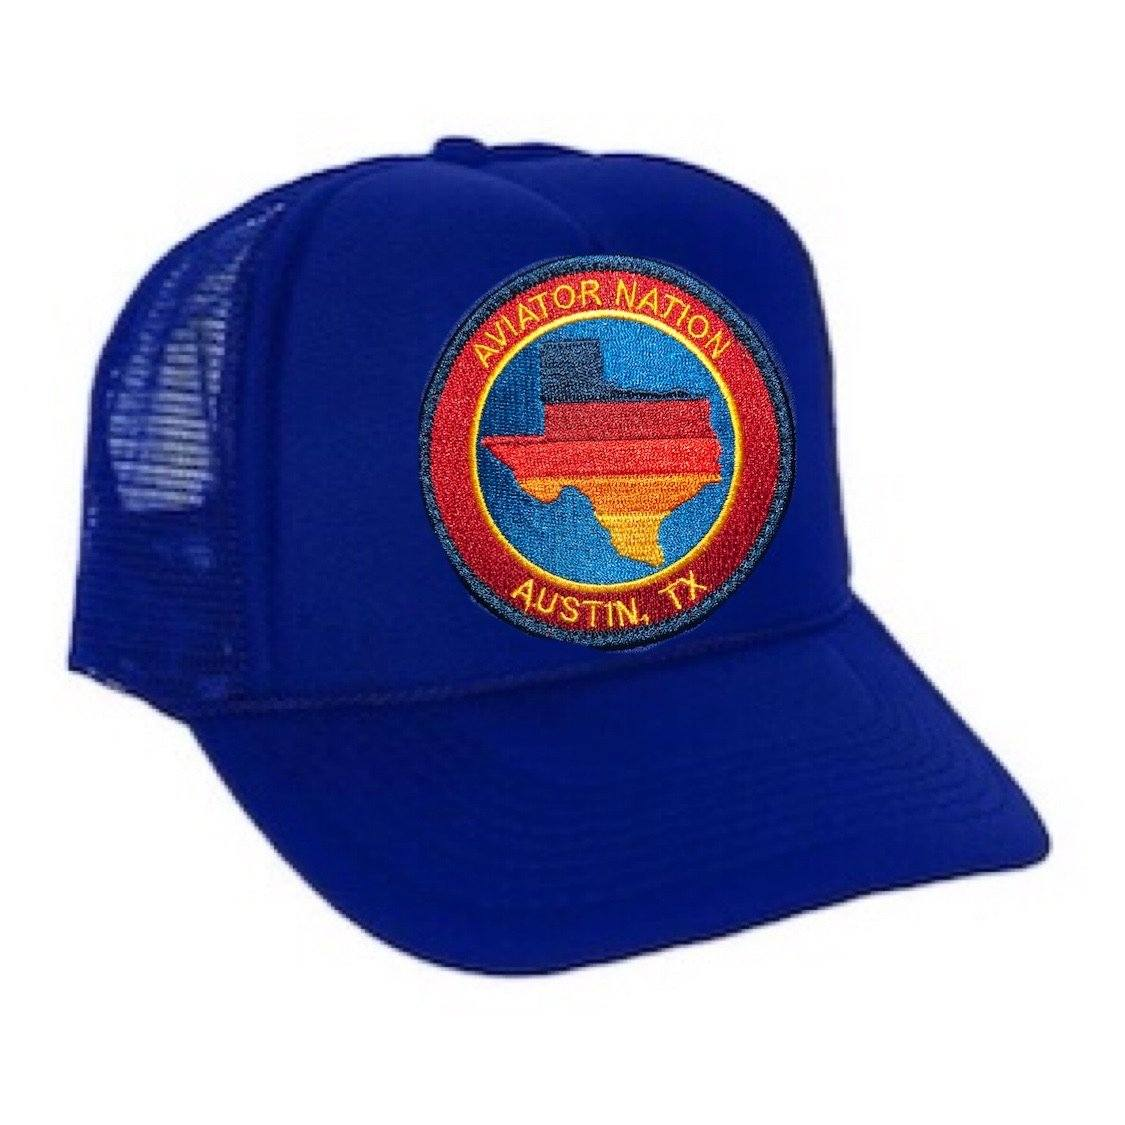 Aviator Nation - Royal Blue Austin Texas Kids Vintage Trucker Hat hat Aviator Nation